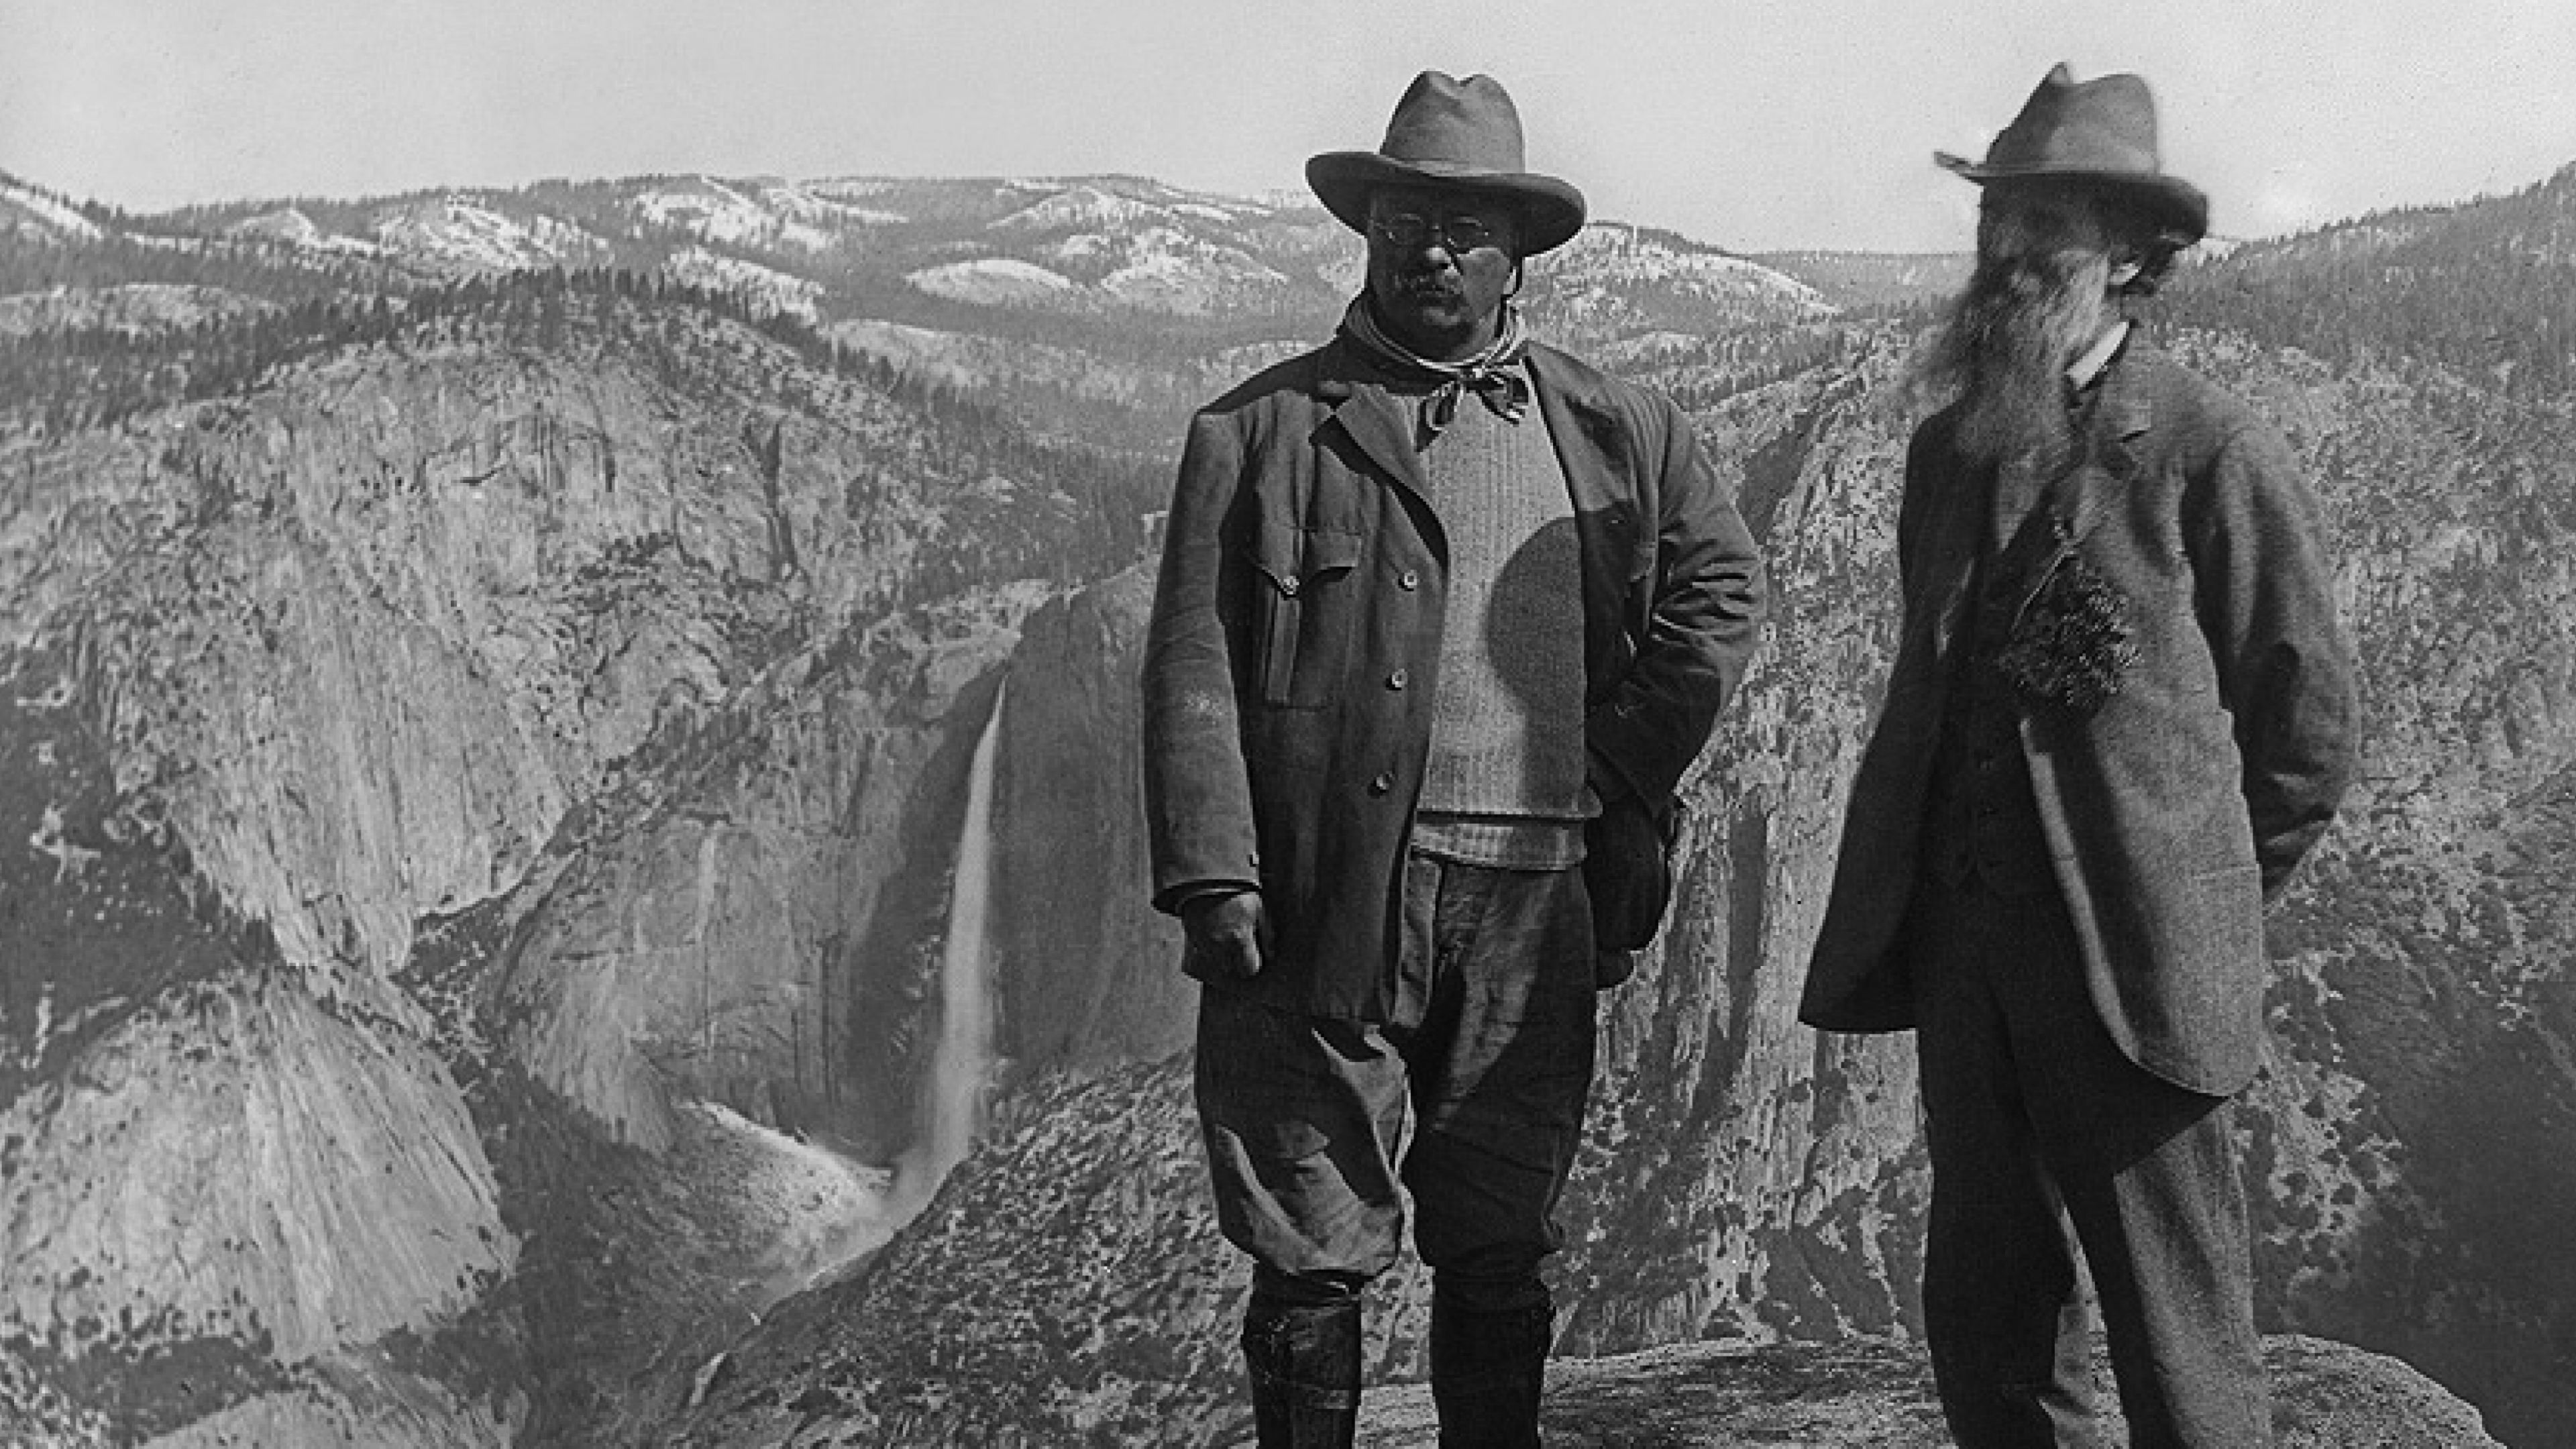 theodore roosevelts lasting legacy In 1905, in a suitably elaborate ceremony, theodore roosevelt gave  of  interventionism that left a permanent impression on franklin's mind.